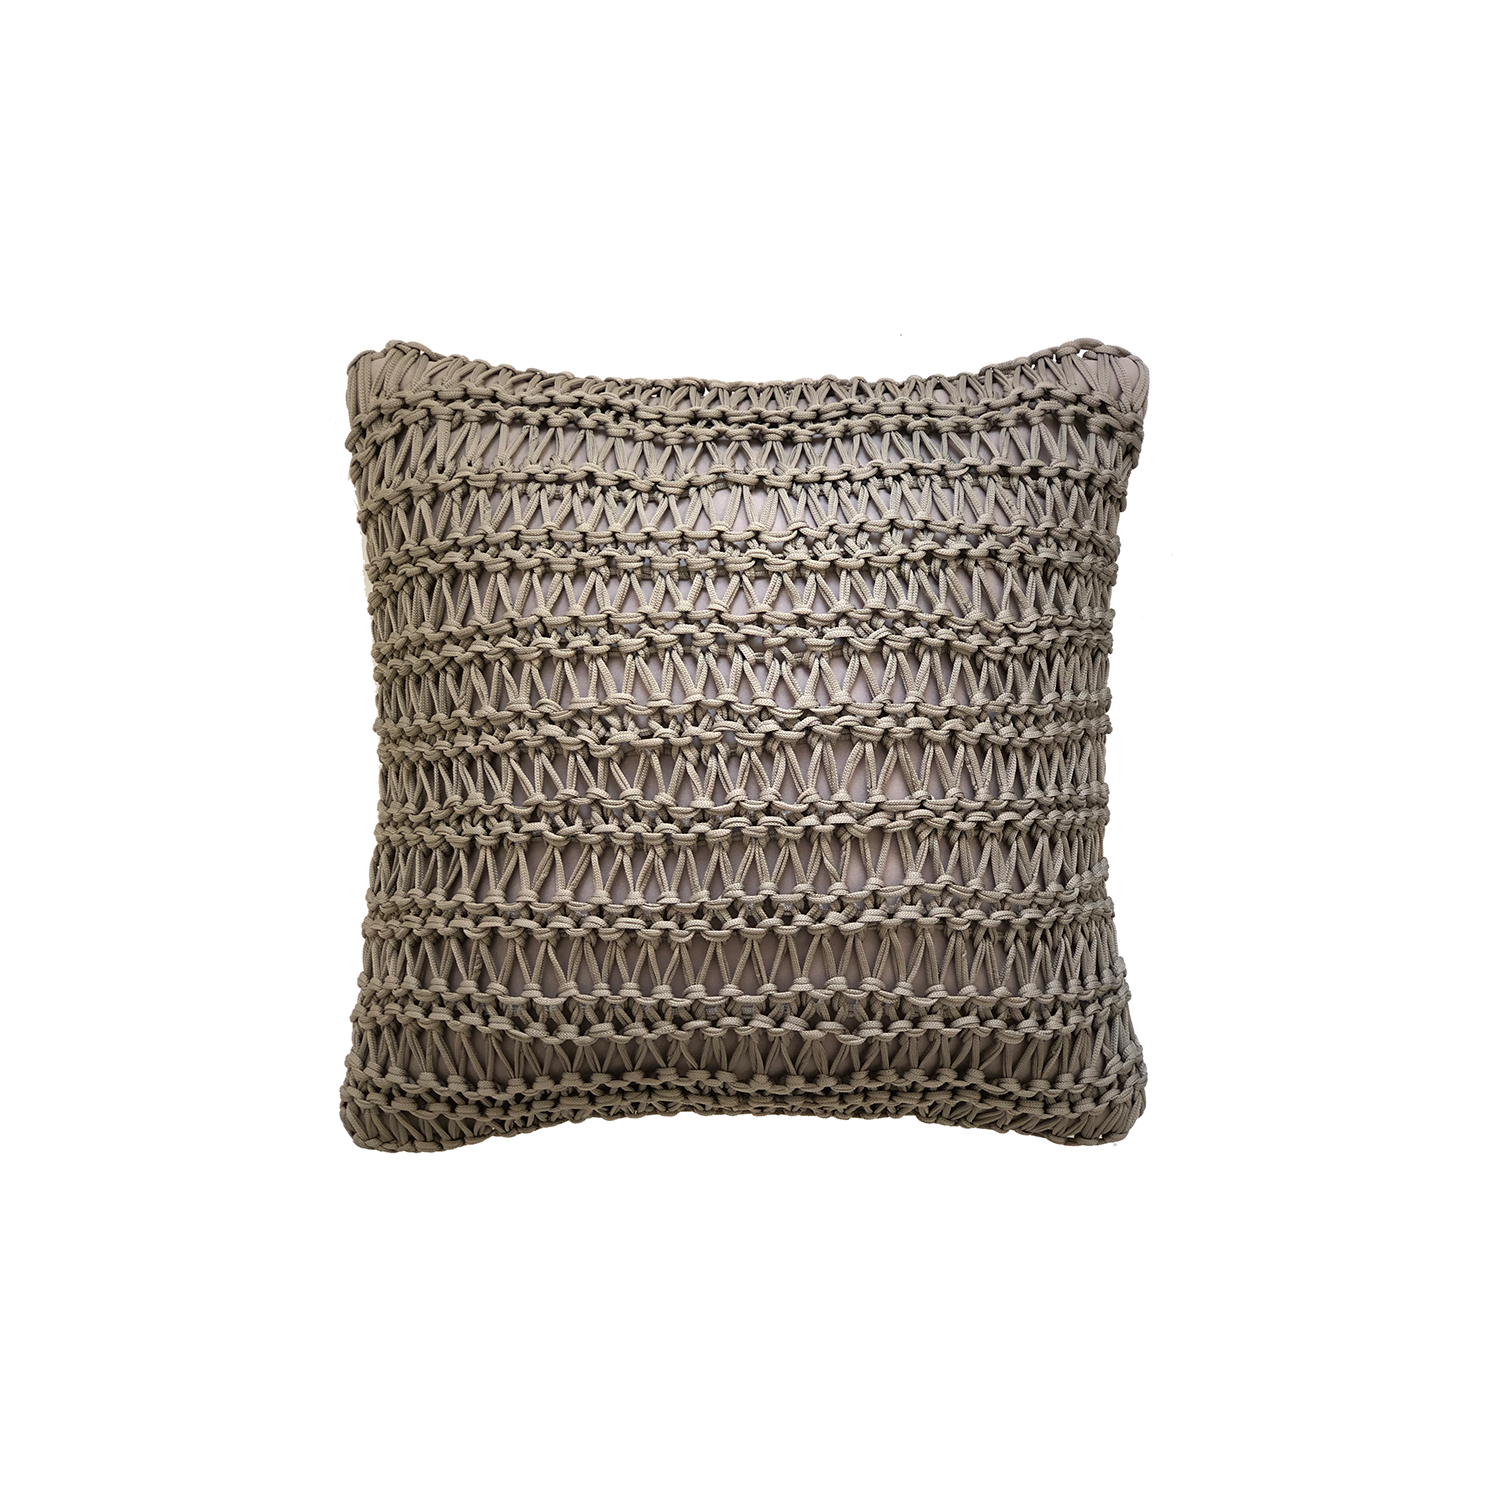 Veleiro Neo Cushion Square - The Veleiro Neo Cushion is carefully knitted within a trained community of women that found in their craft a way to provide for their families. The outdoor collection is made with synthetic fibres, resistant to weather exposure. The use of neoprene brings comfort and technology to the cushions.  The front panel is in neoprene combined with hand woven nautical cord, made in Brazil.  The inner cushion is in Hollow Fibre, made in the UK.  Please enquire for more information and see colour chart for reference.  | Matter of Stuff